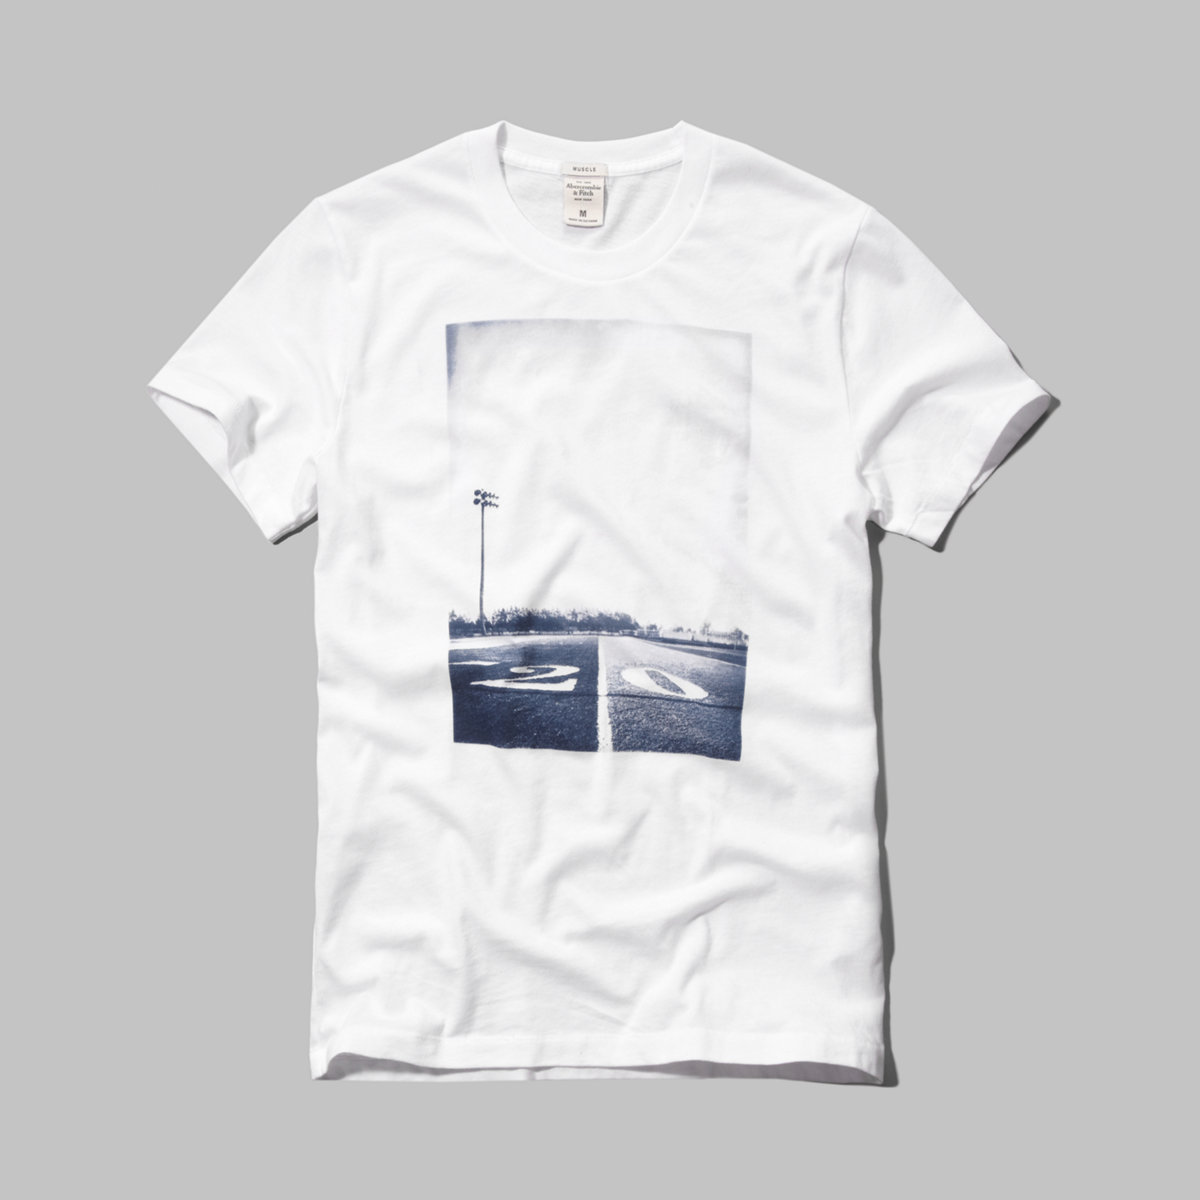 Track Photoreal Graphic Tee